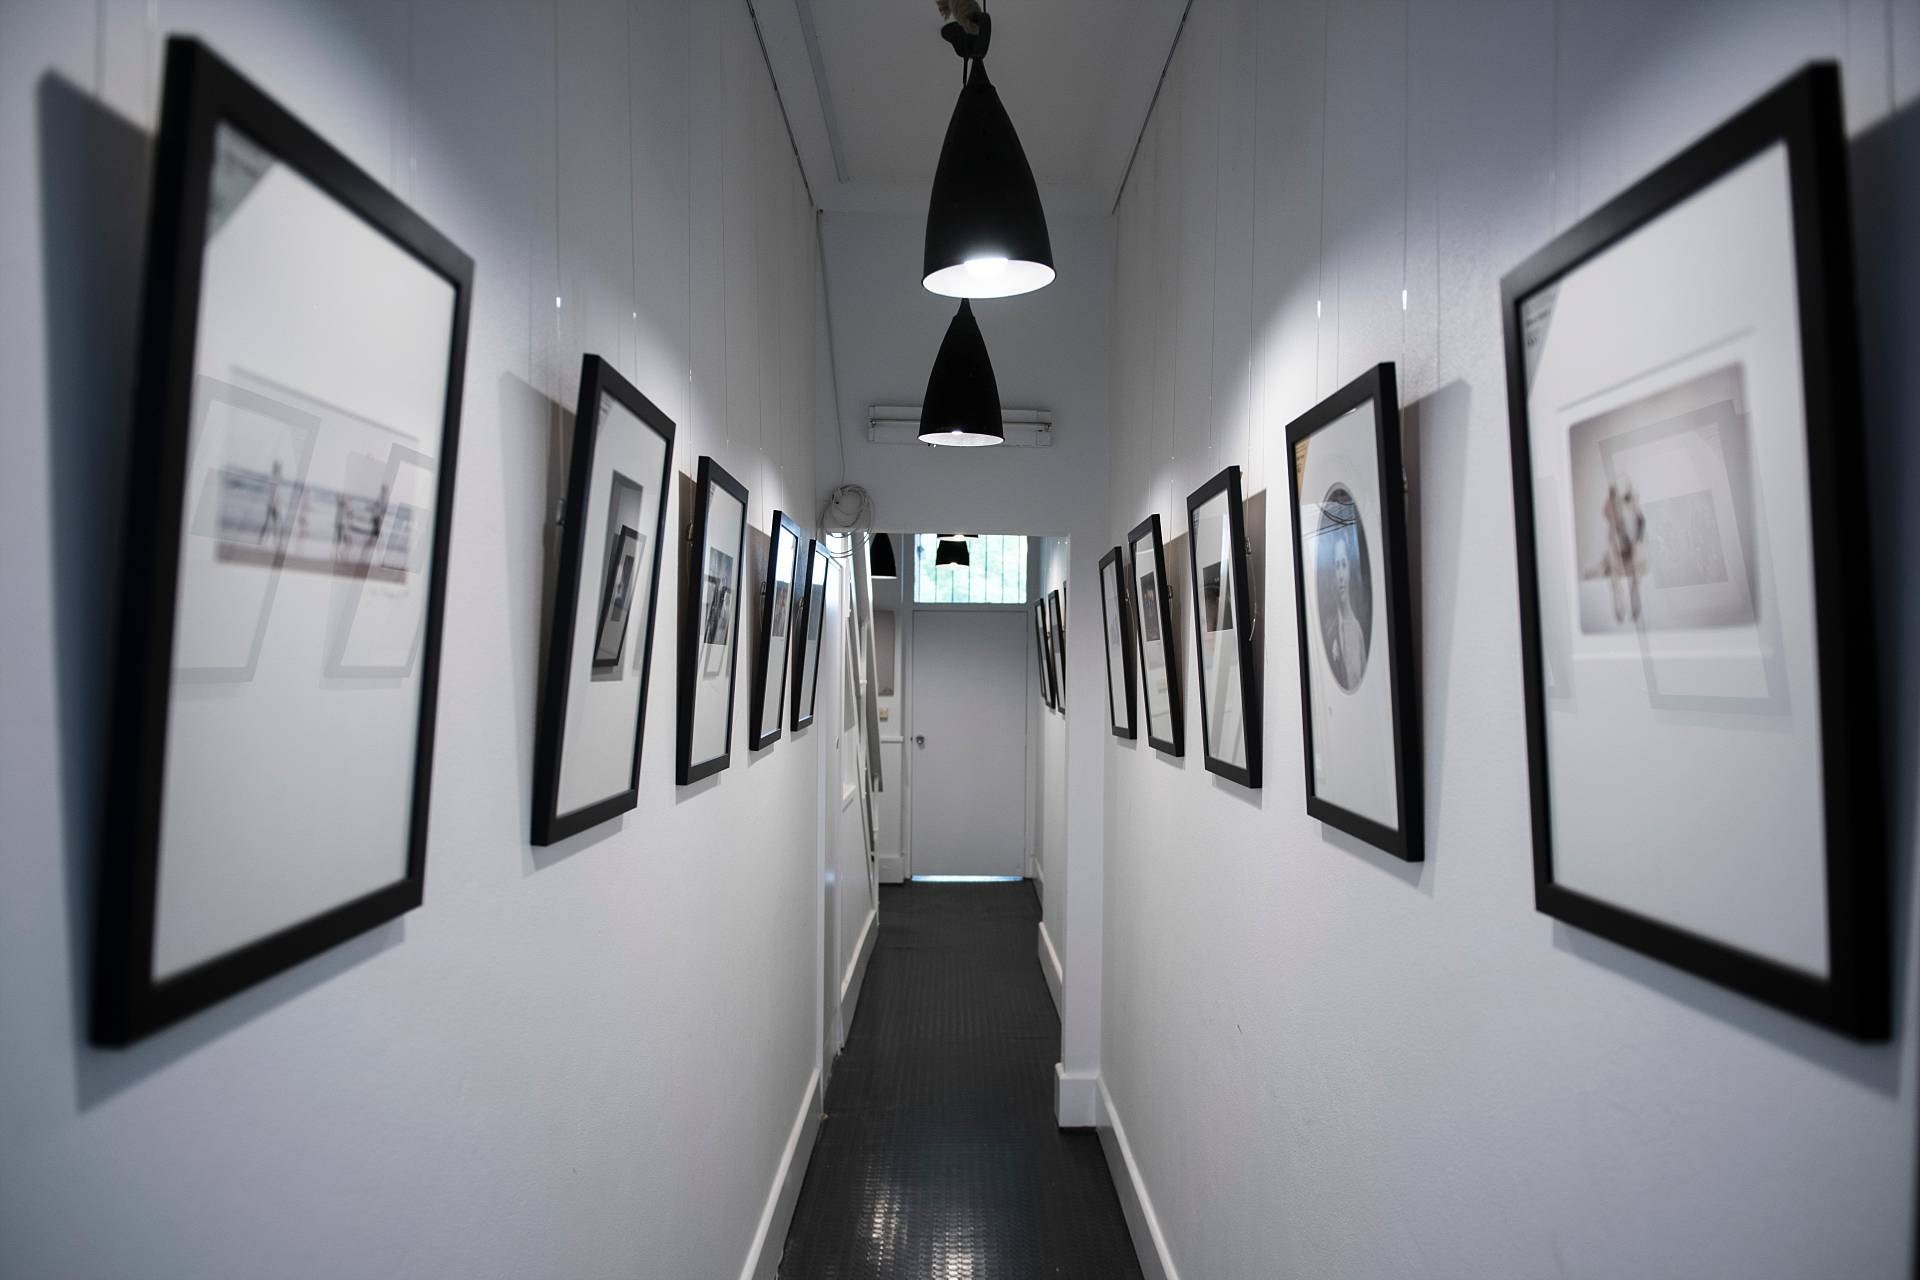 A mini gallery as you come in